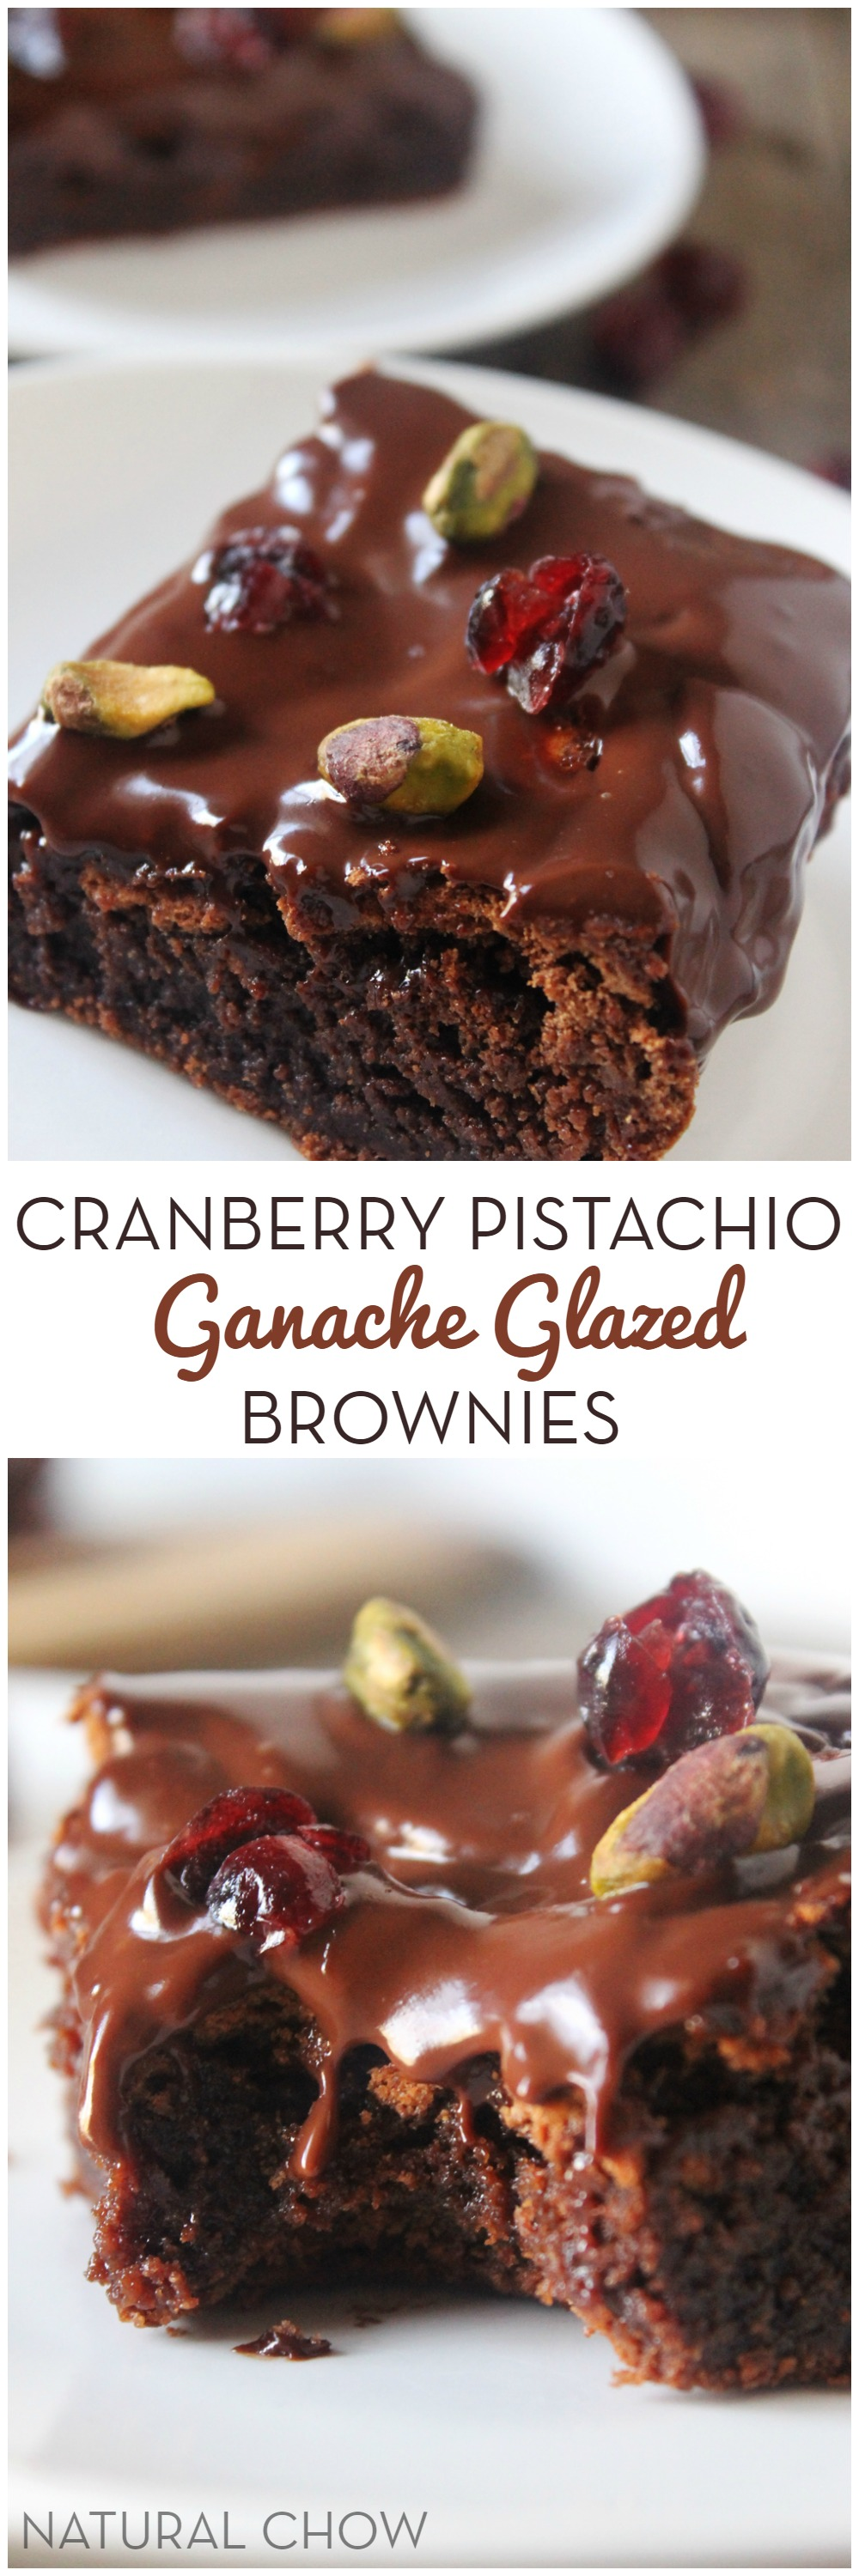 Cranberry Pistachio Ganache Glazed Brownies // A super indulgent, yet healthy treat ot make whenever cravings strike! // Natural Chow